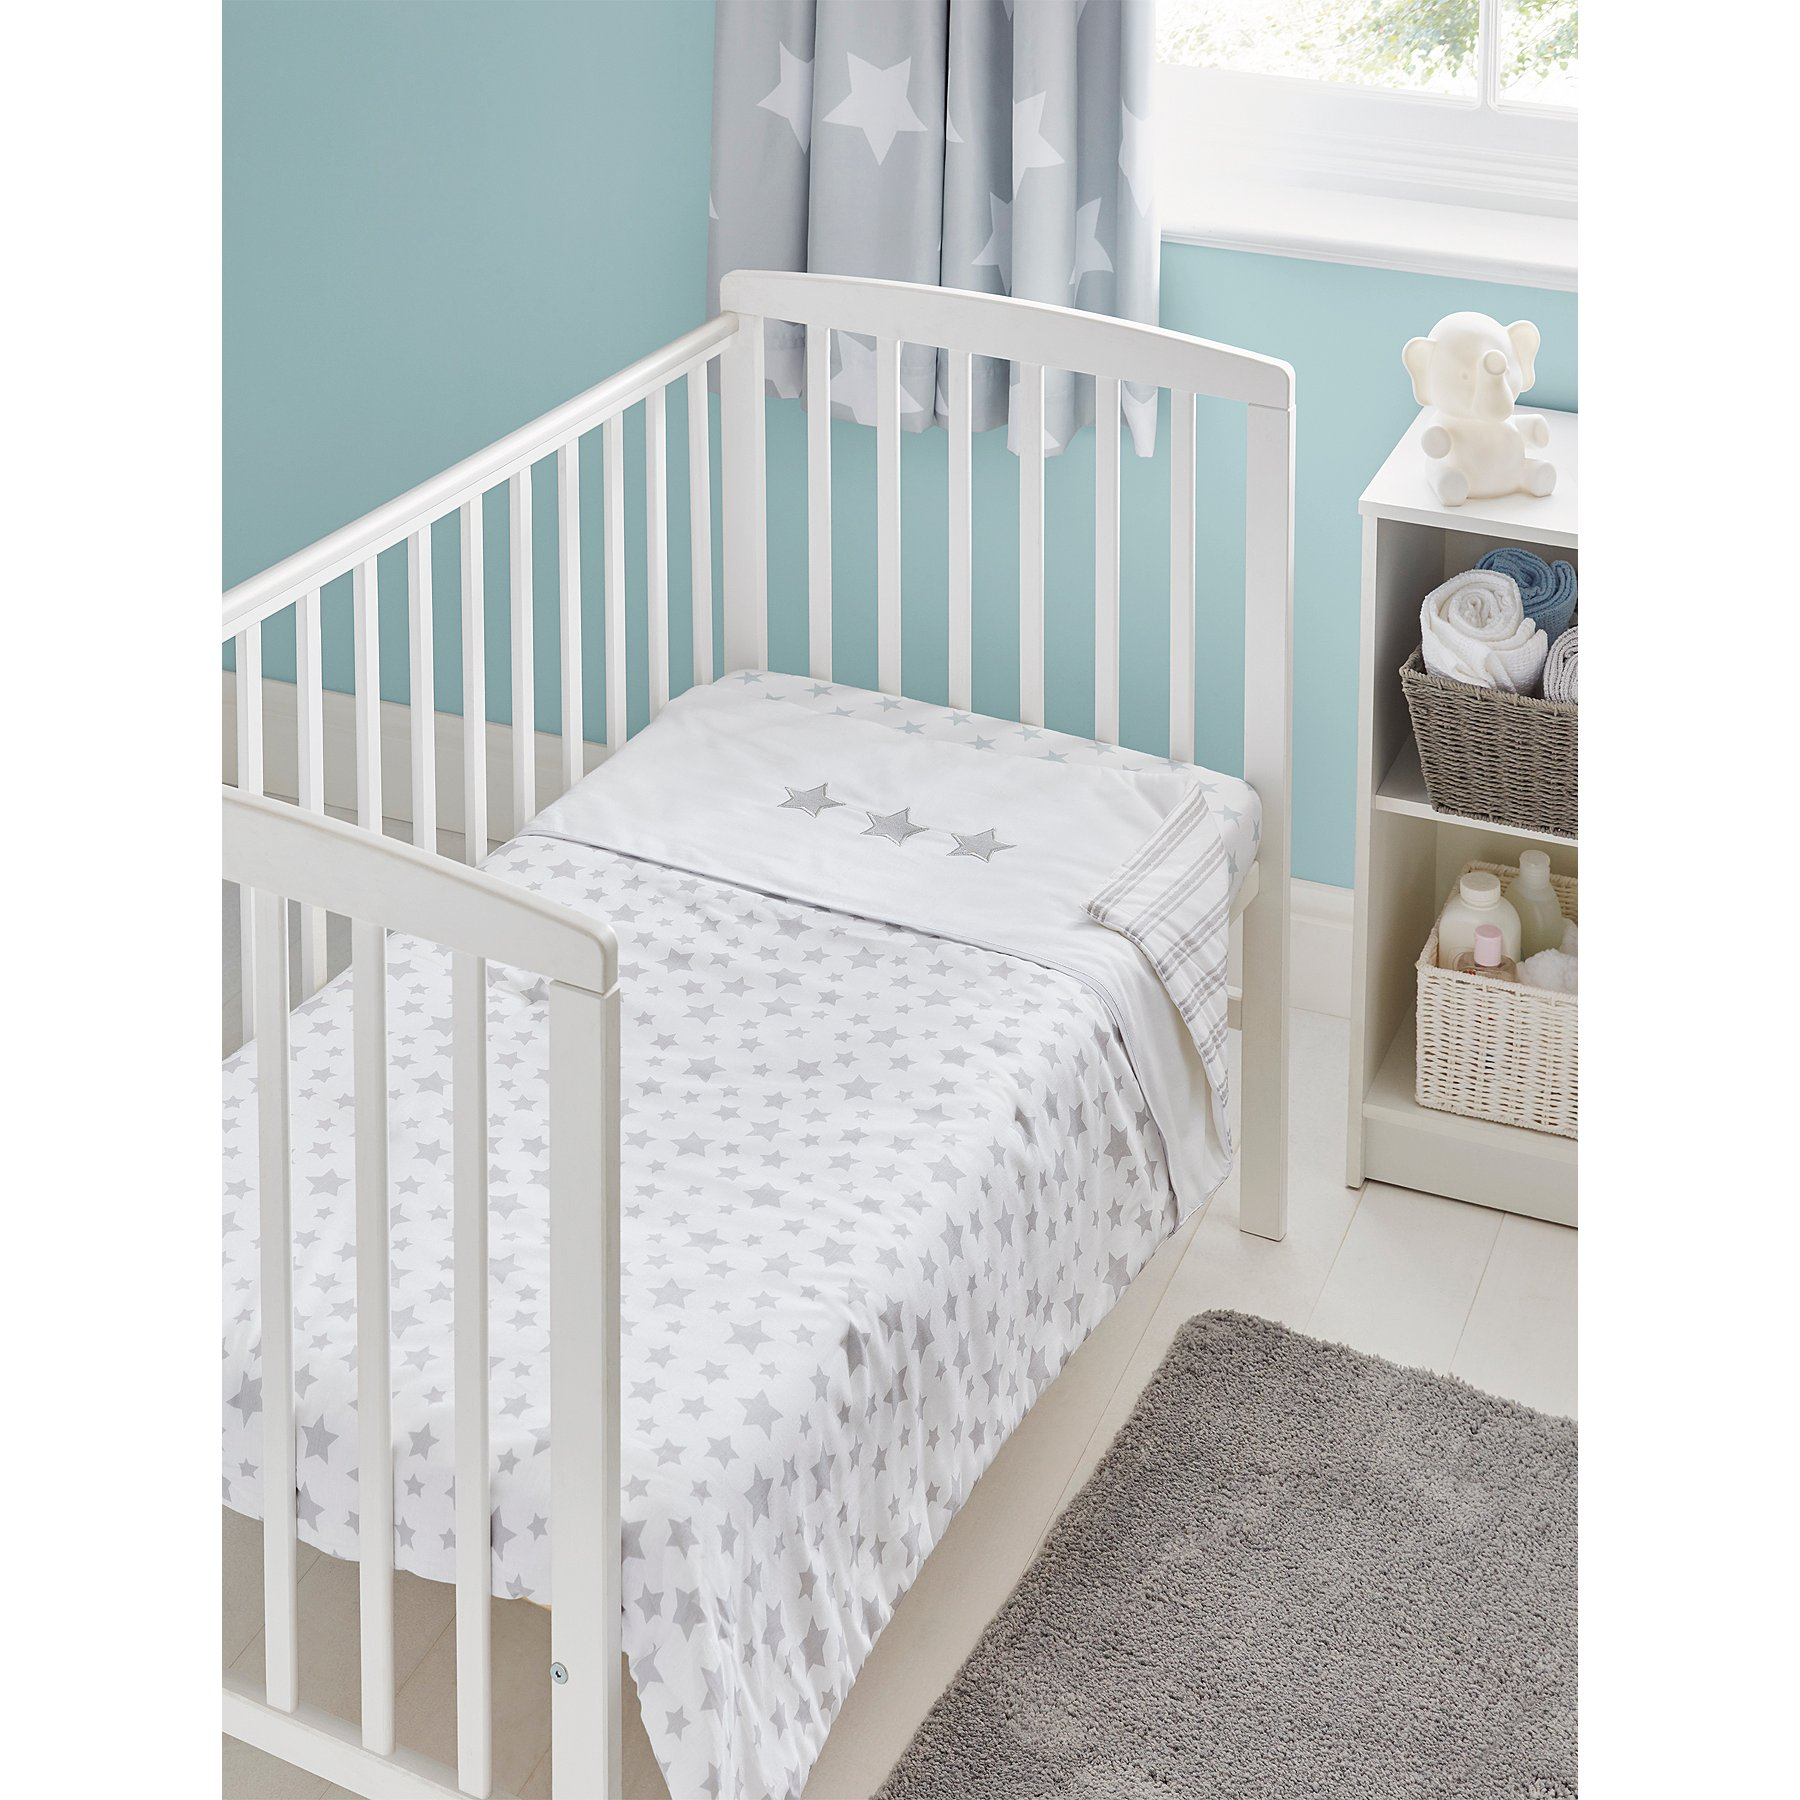 Cot Bedding Baby Bedding | George at ASDA